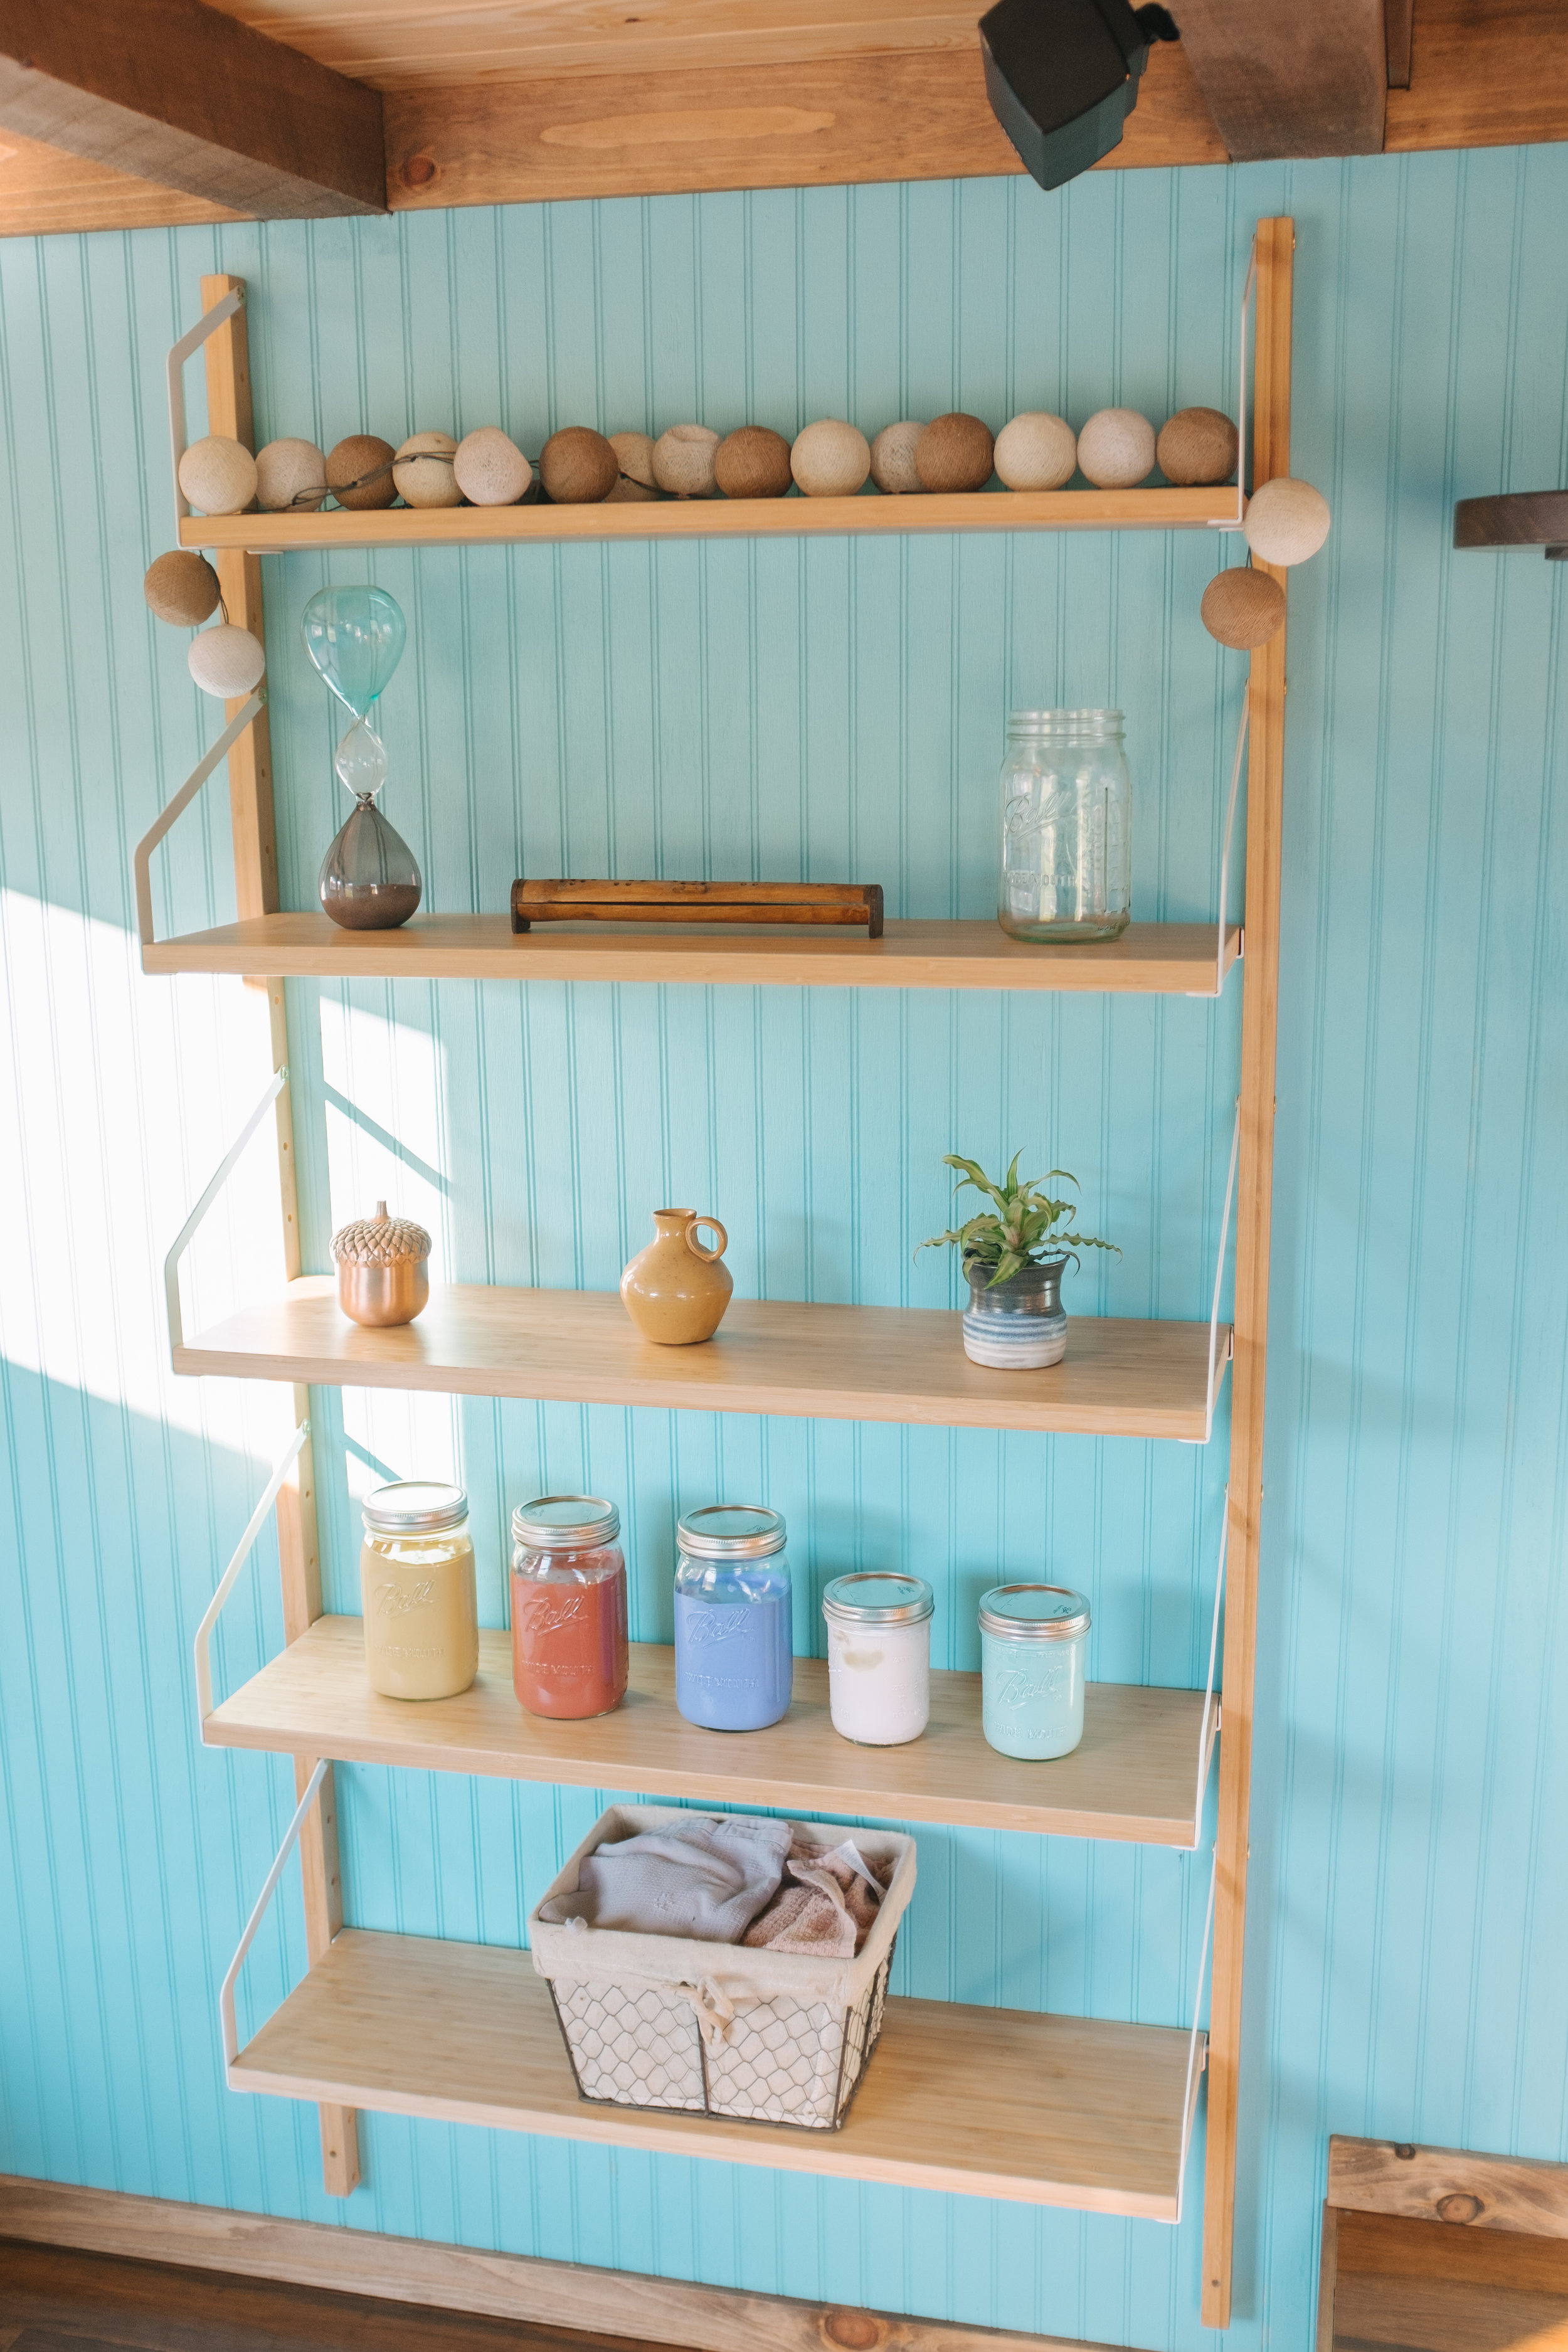 The Big Whimsy by Wind River Tiny Homes - bead board siding, IKEA shelving, custom lily pad spiral stairs